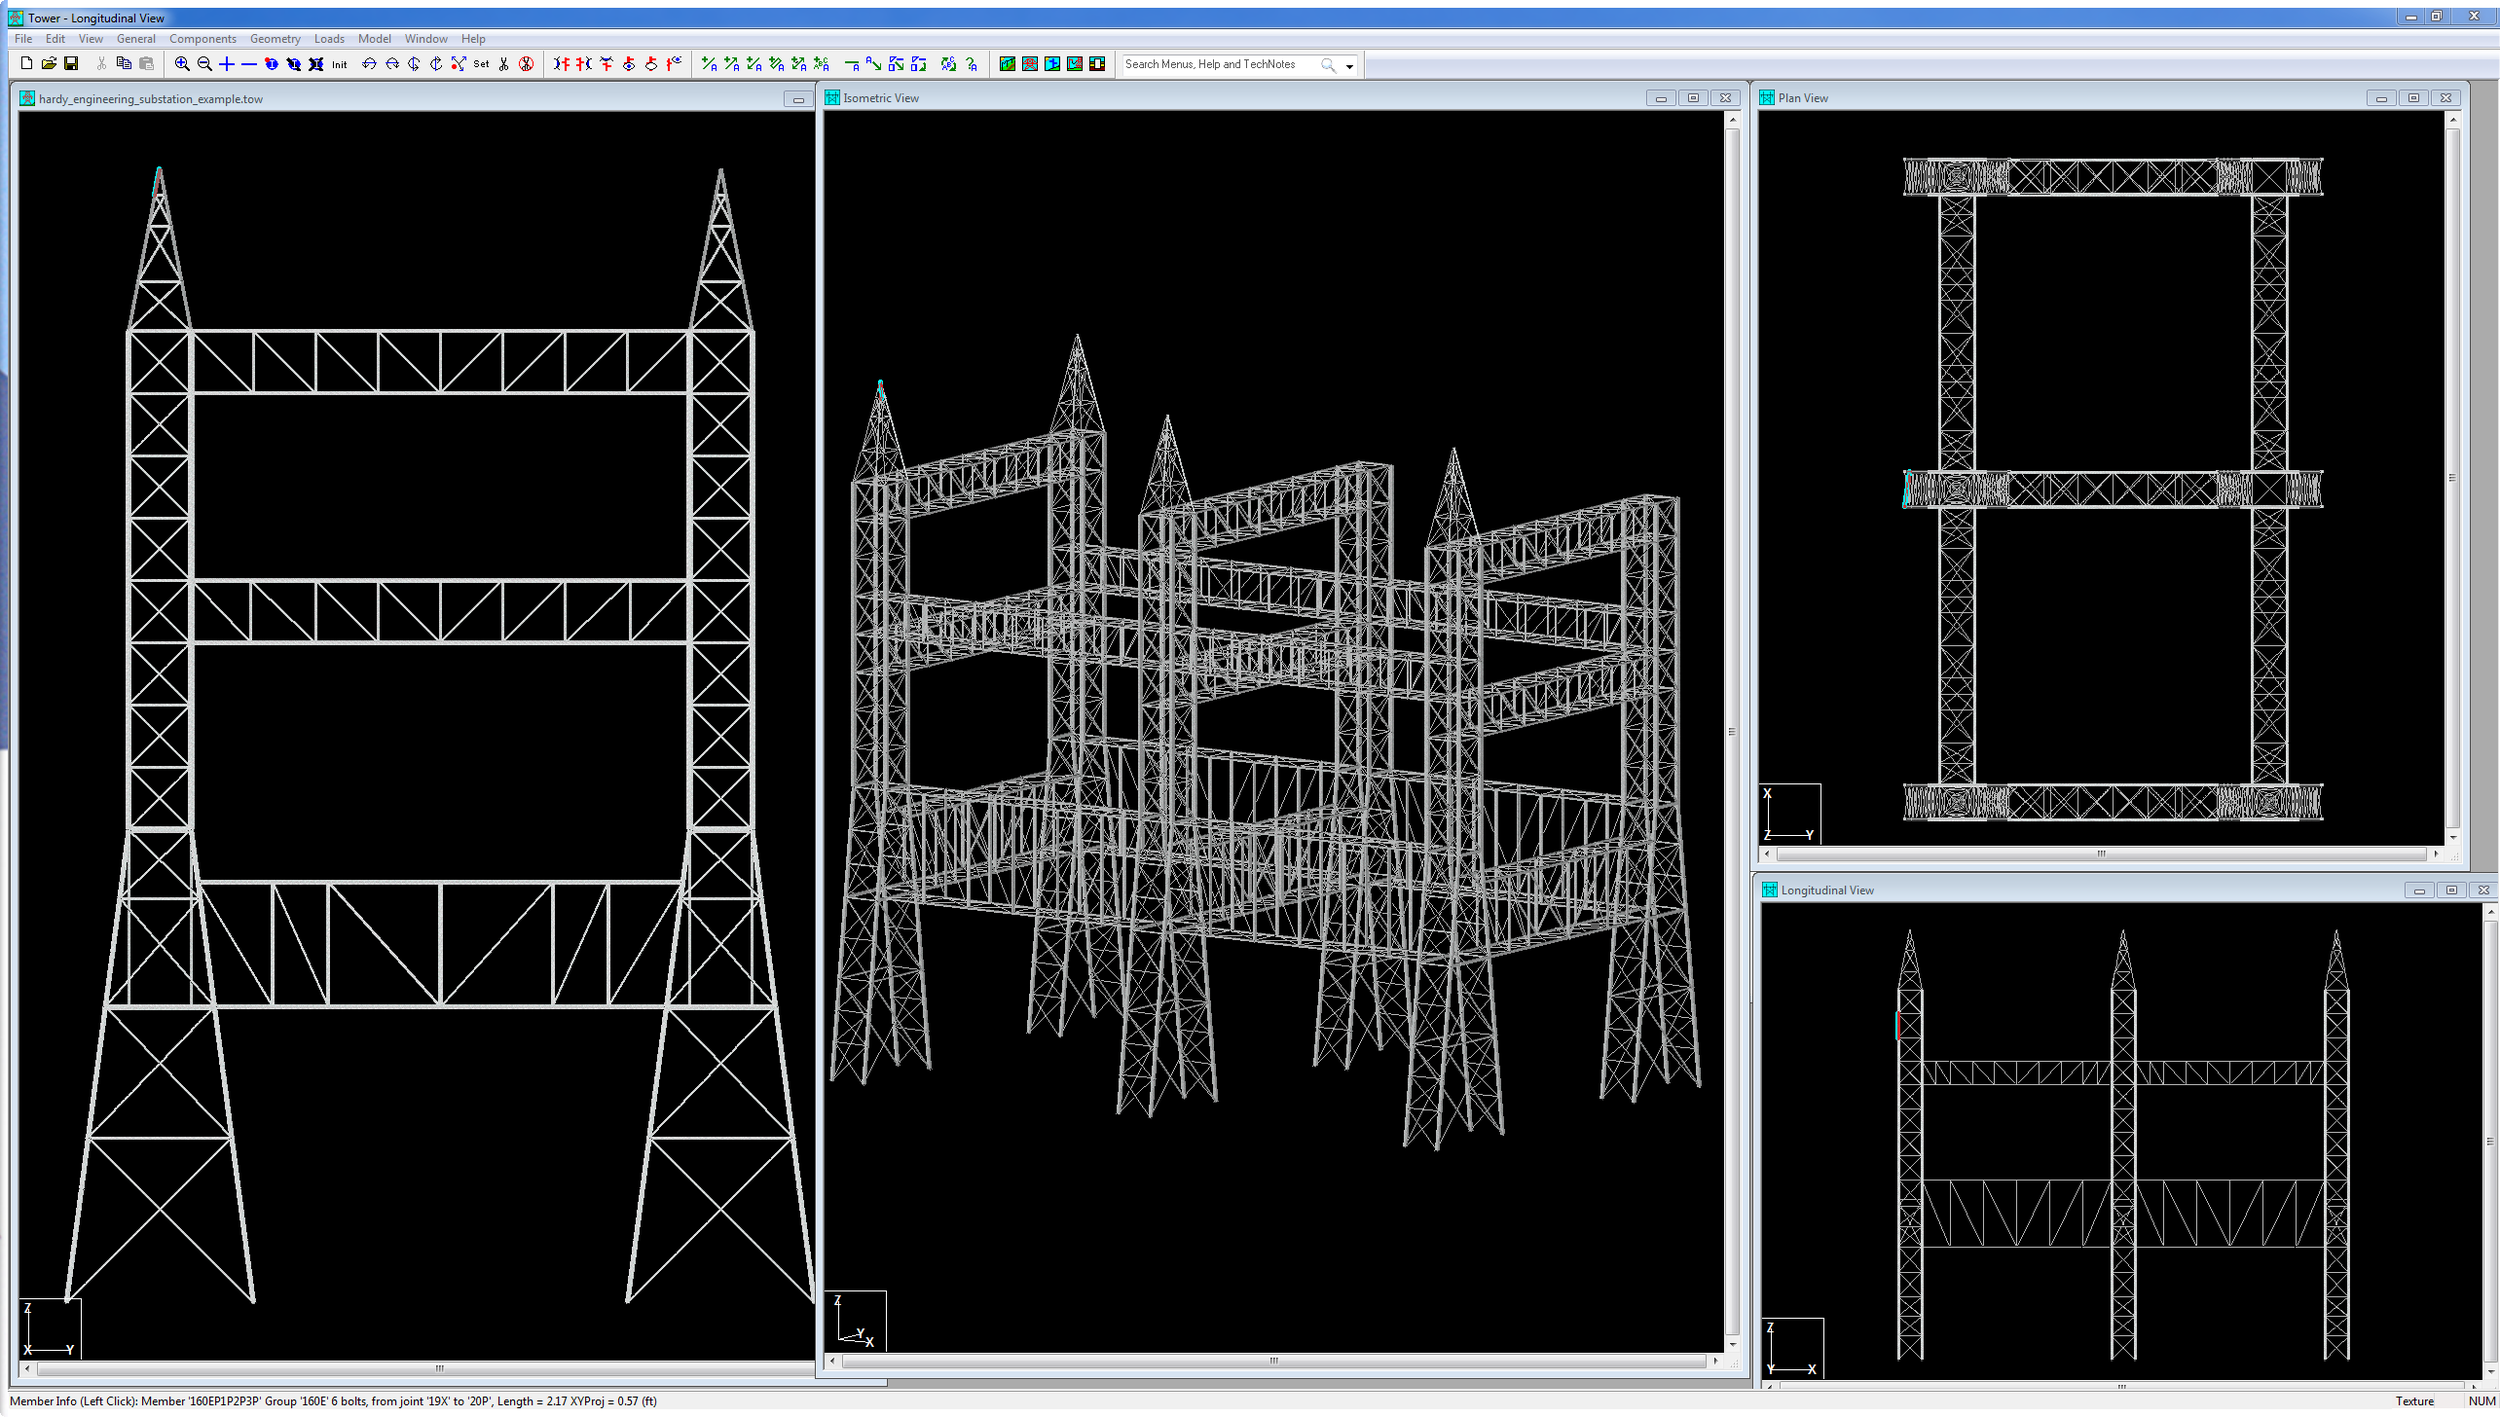 Copy of Copy of Substation modeled in TOWER for evaluation of loading from new microwave antennas. Example courtesy of Adam Kirk of Hardy Engineering.